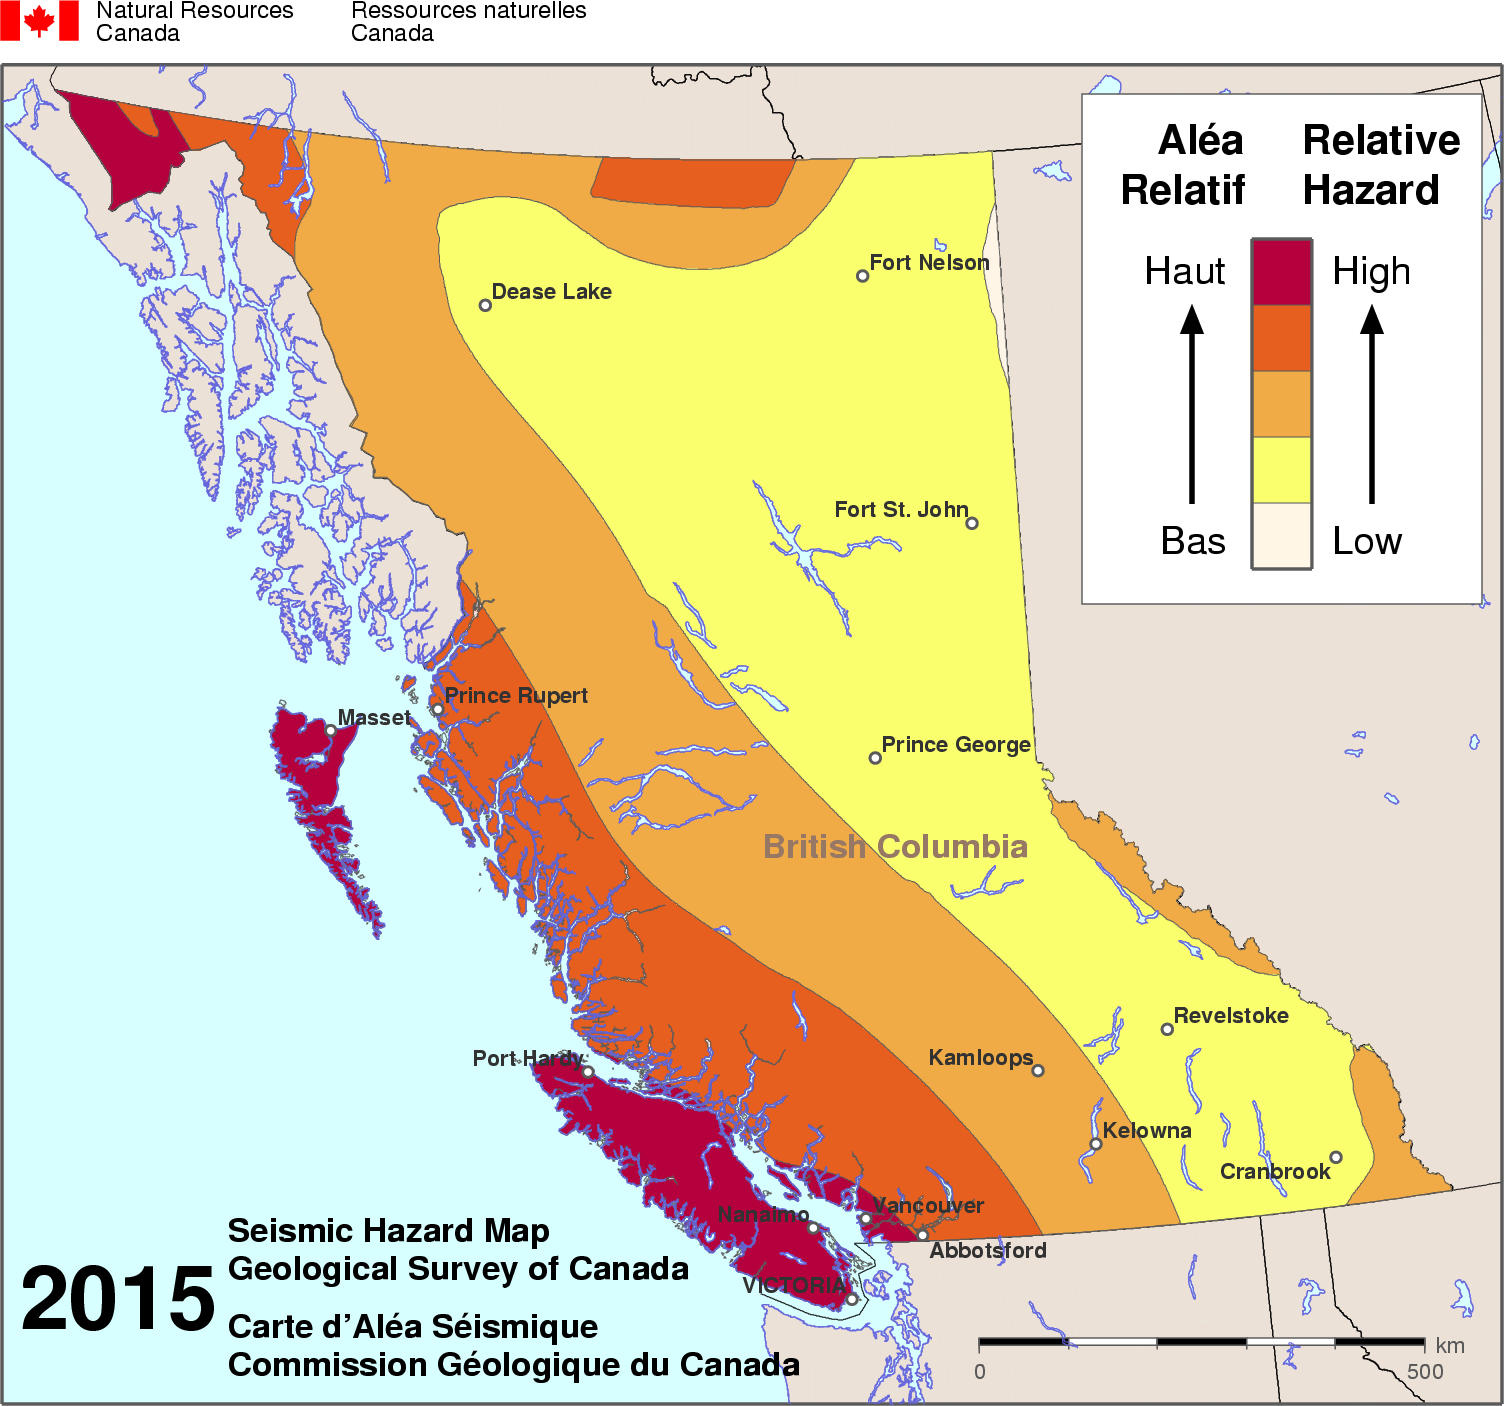 Map Of Canada British Columbia.Simplified Seismic Hazard Map For Canada The Provinces And Territories